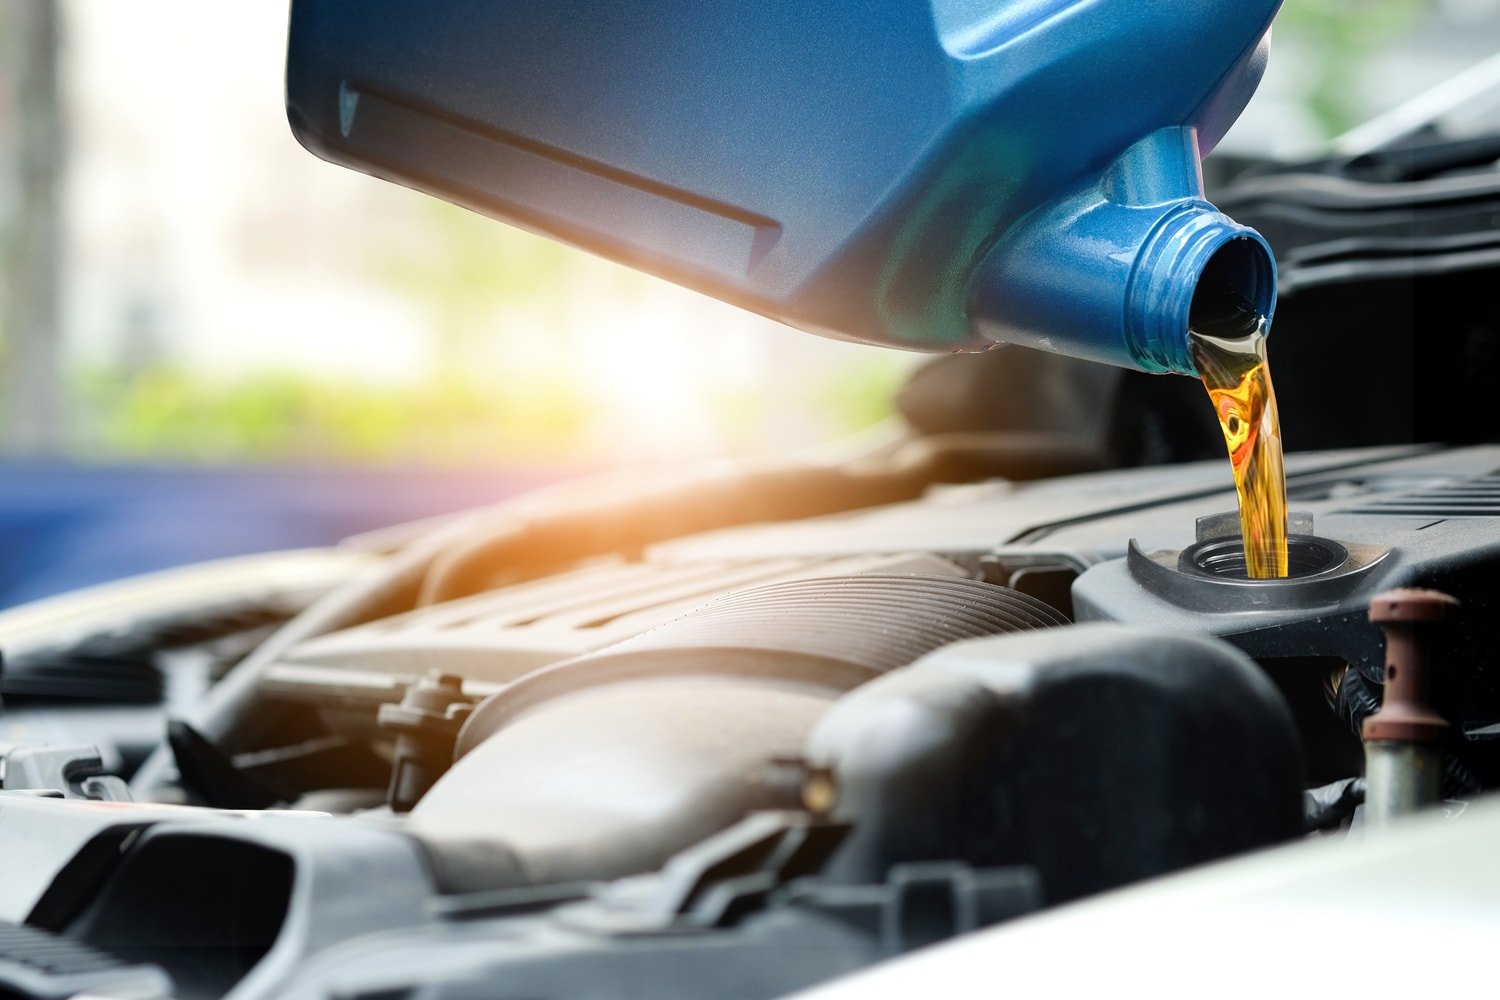 why the oil change is important